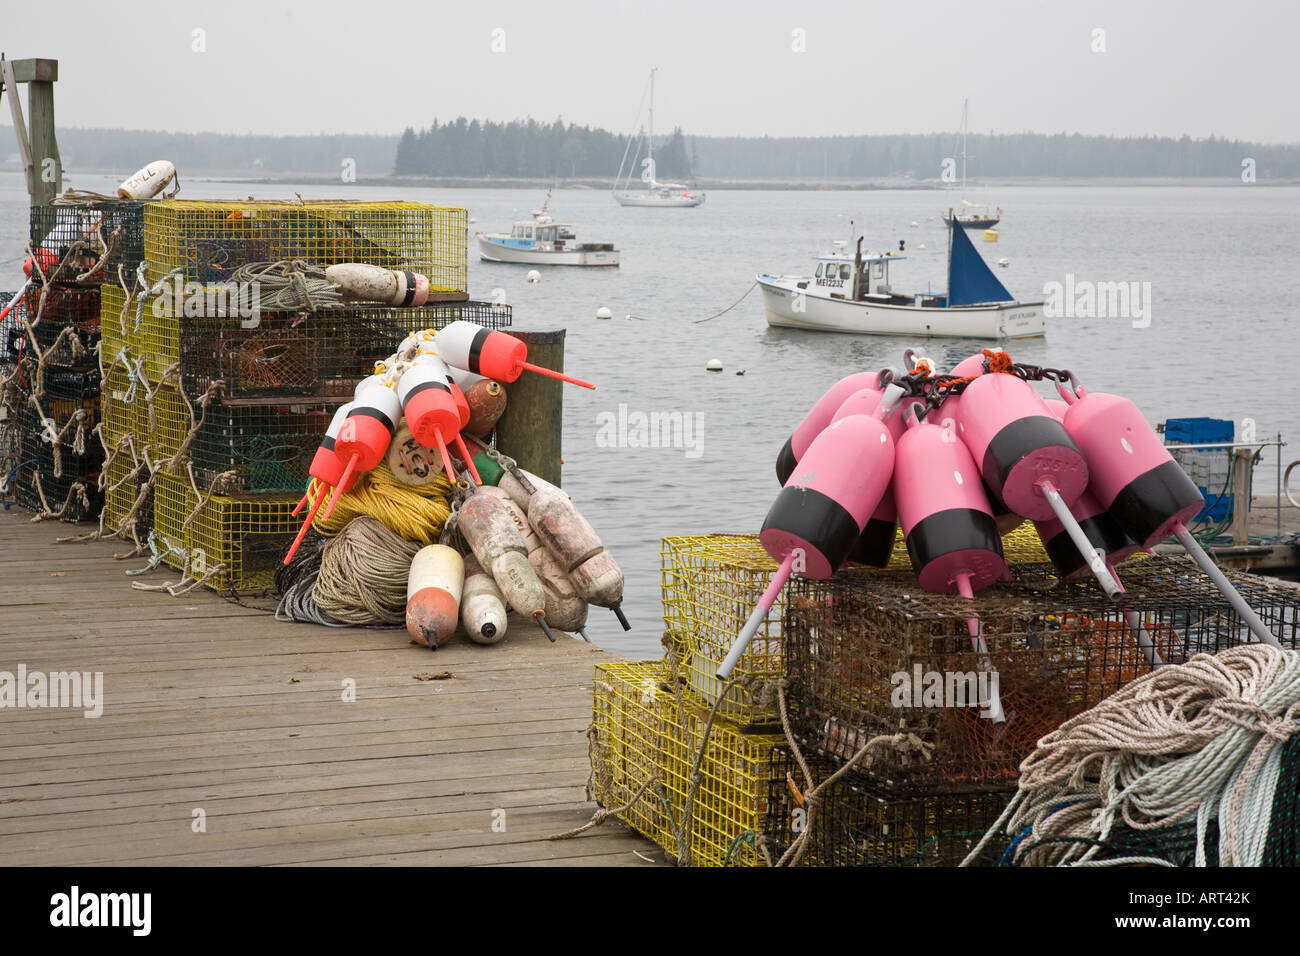 Lobster pots with brightly coloured buoys sit on the dock on a foggy day at Little Cranberry,Maine, USA. Stock Photo